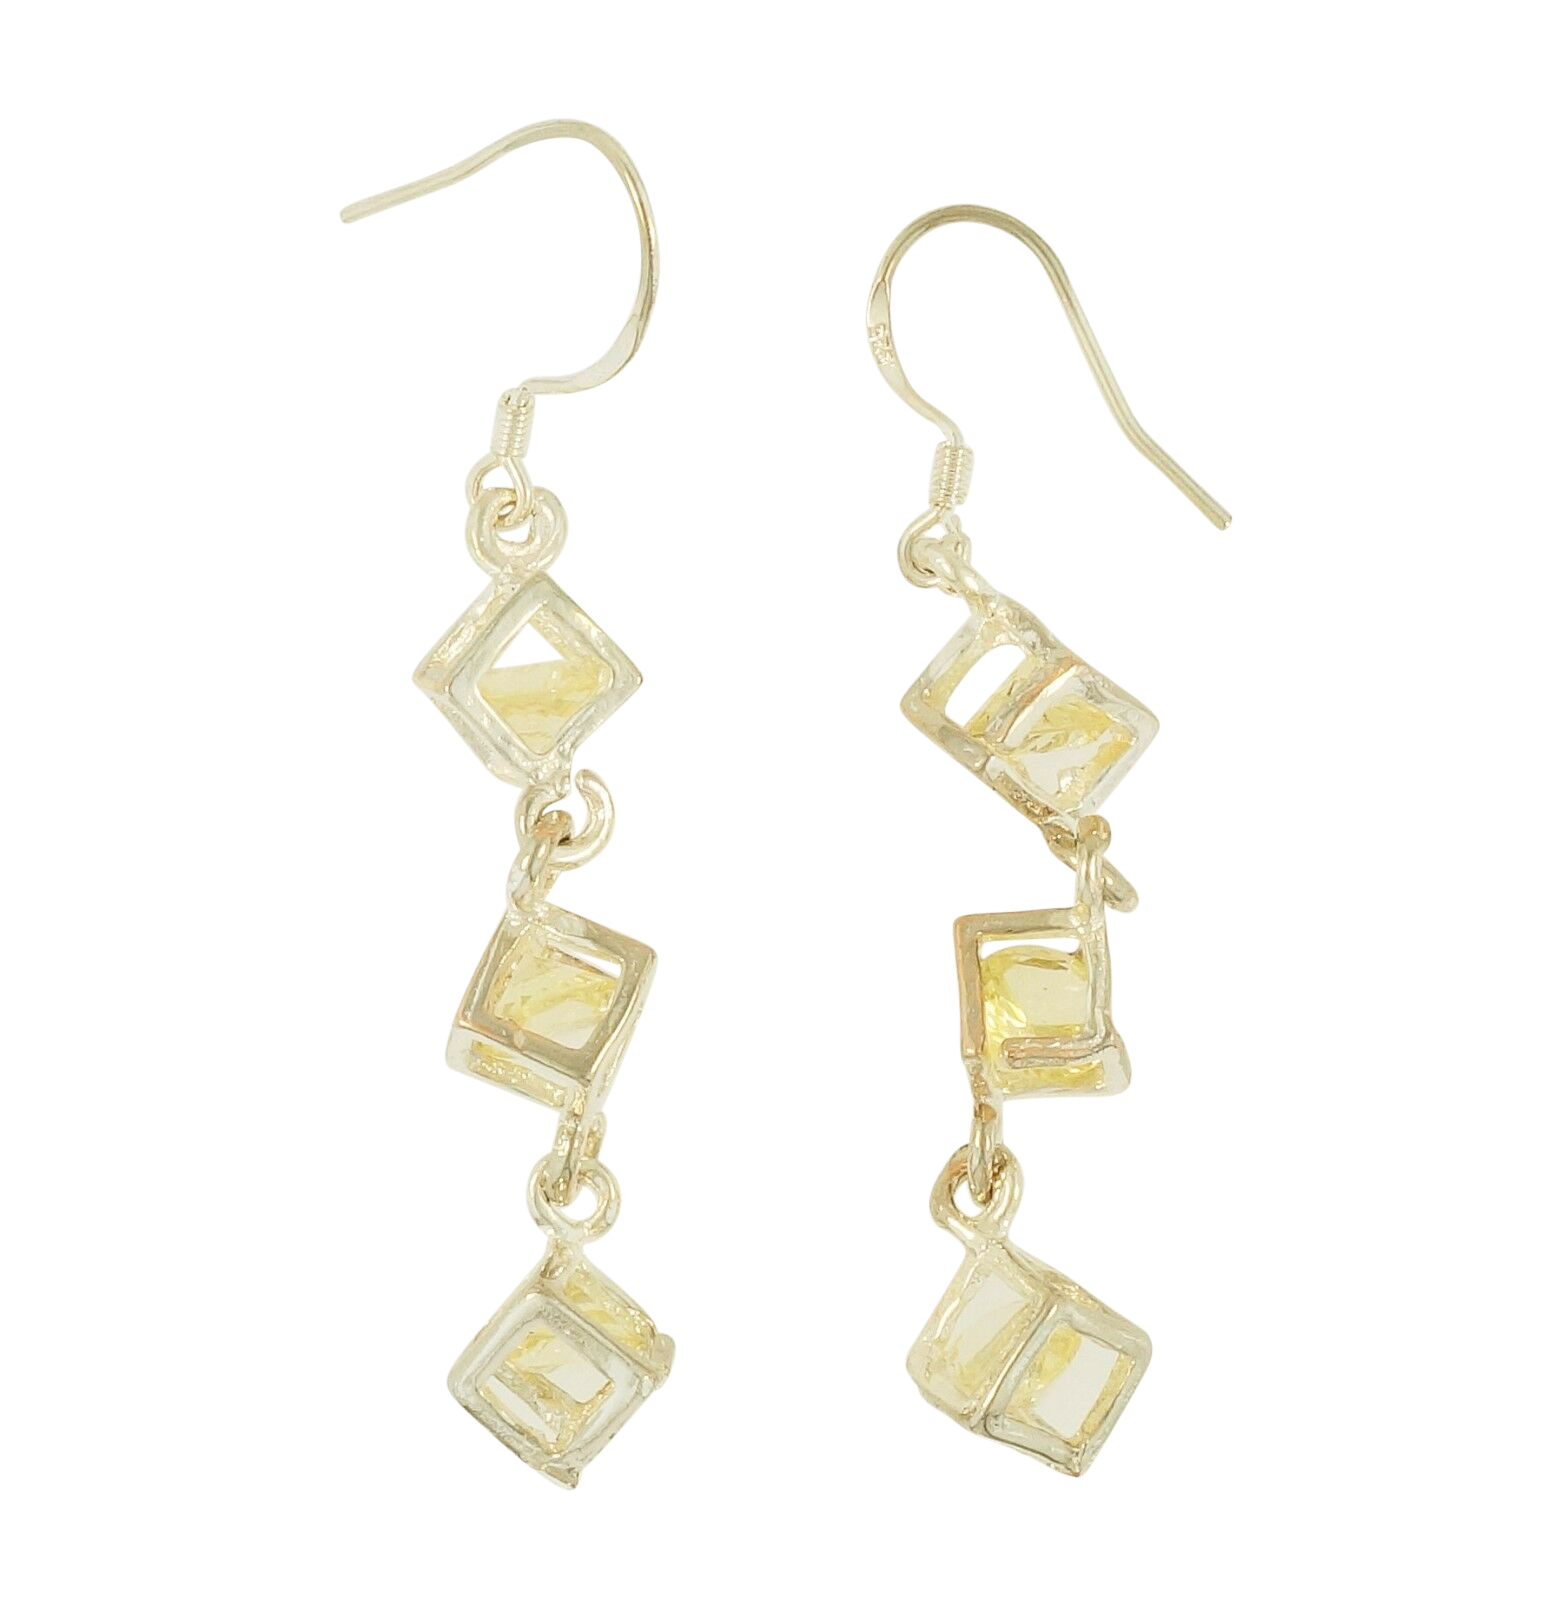 lyst minkoff bar stud metallic long gallery rebecca goldcrystal earrings in product jewelry